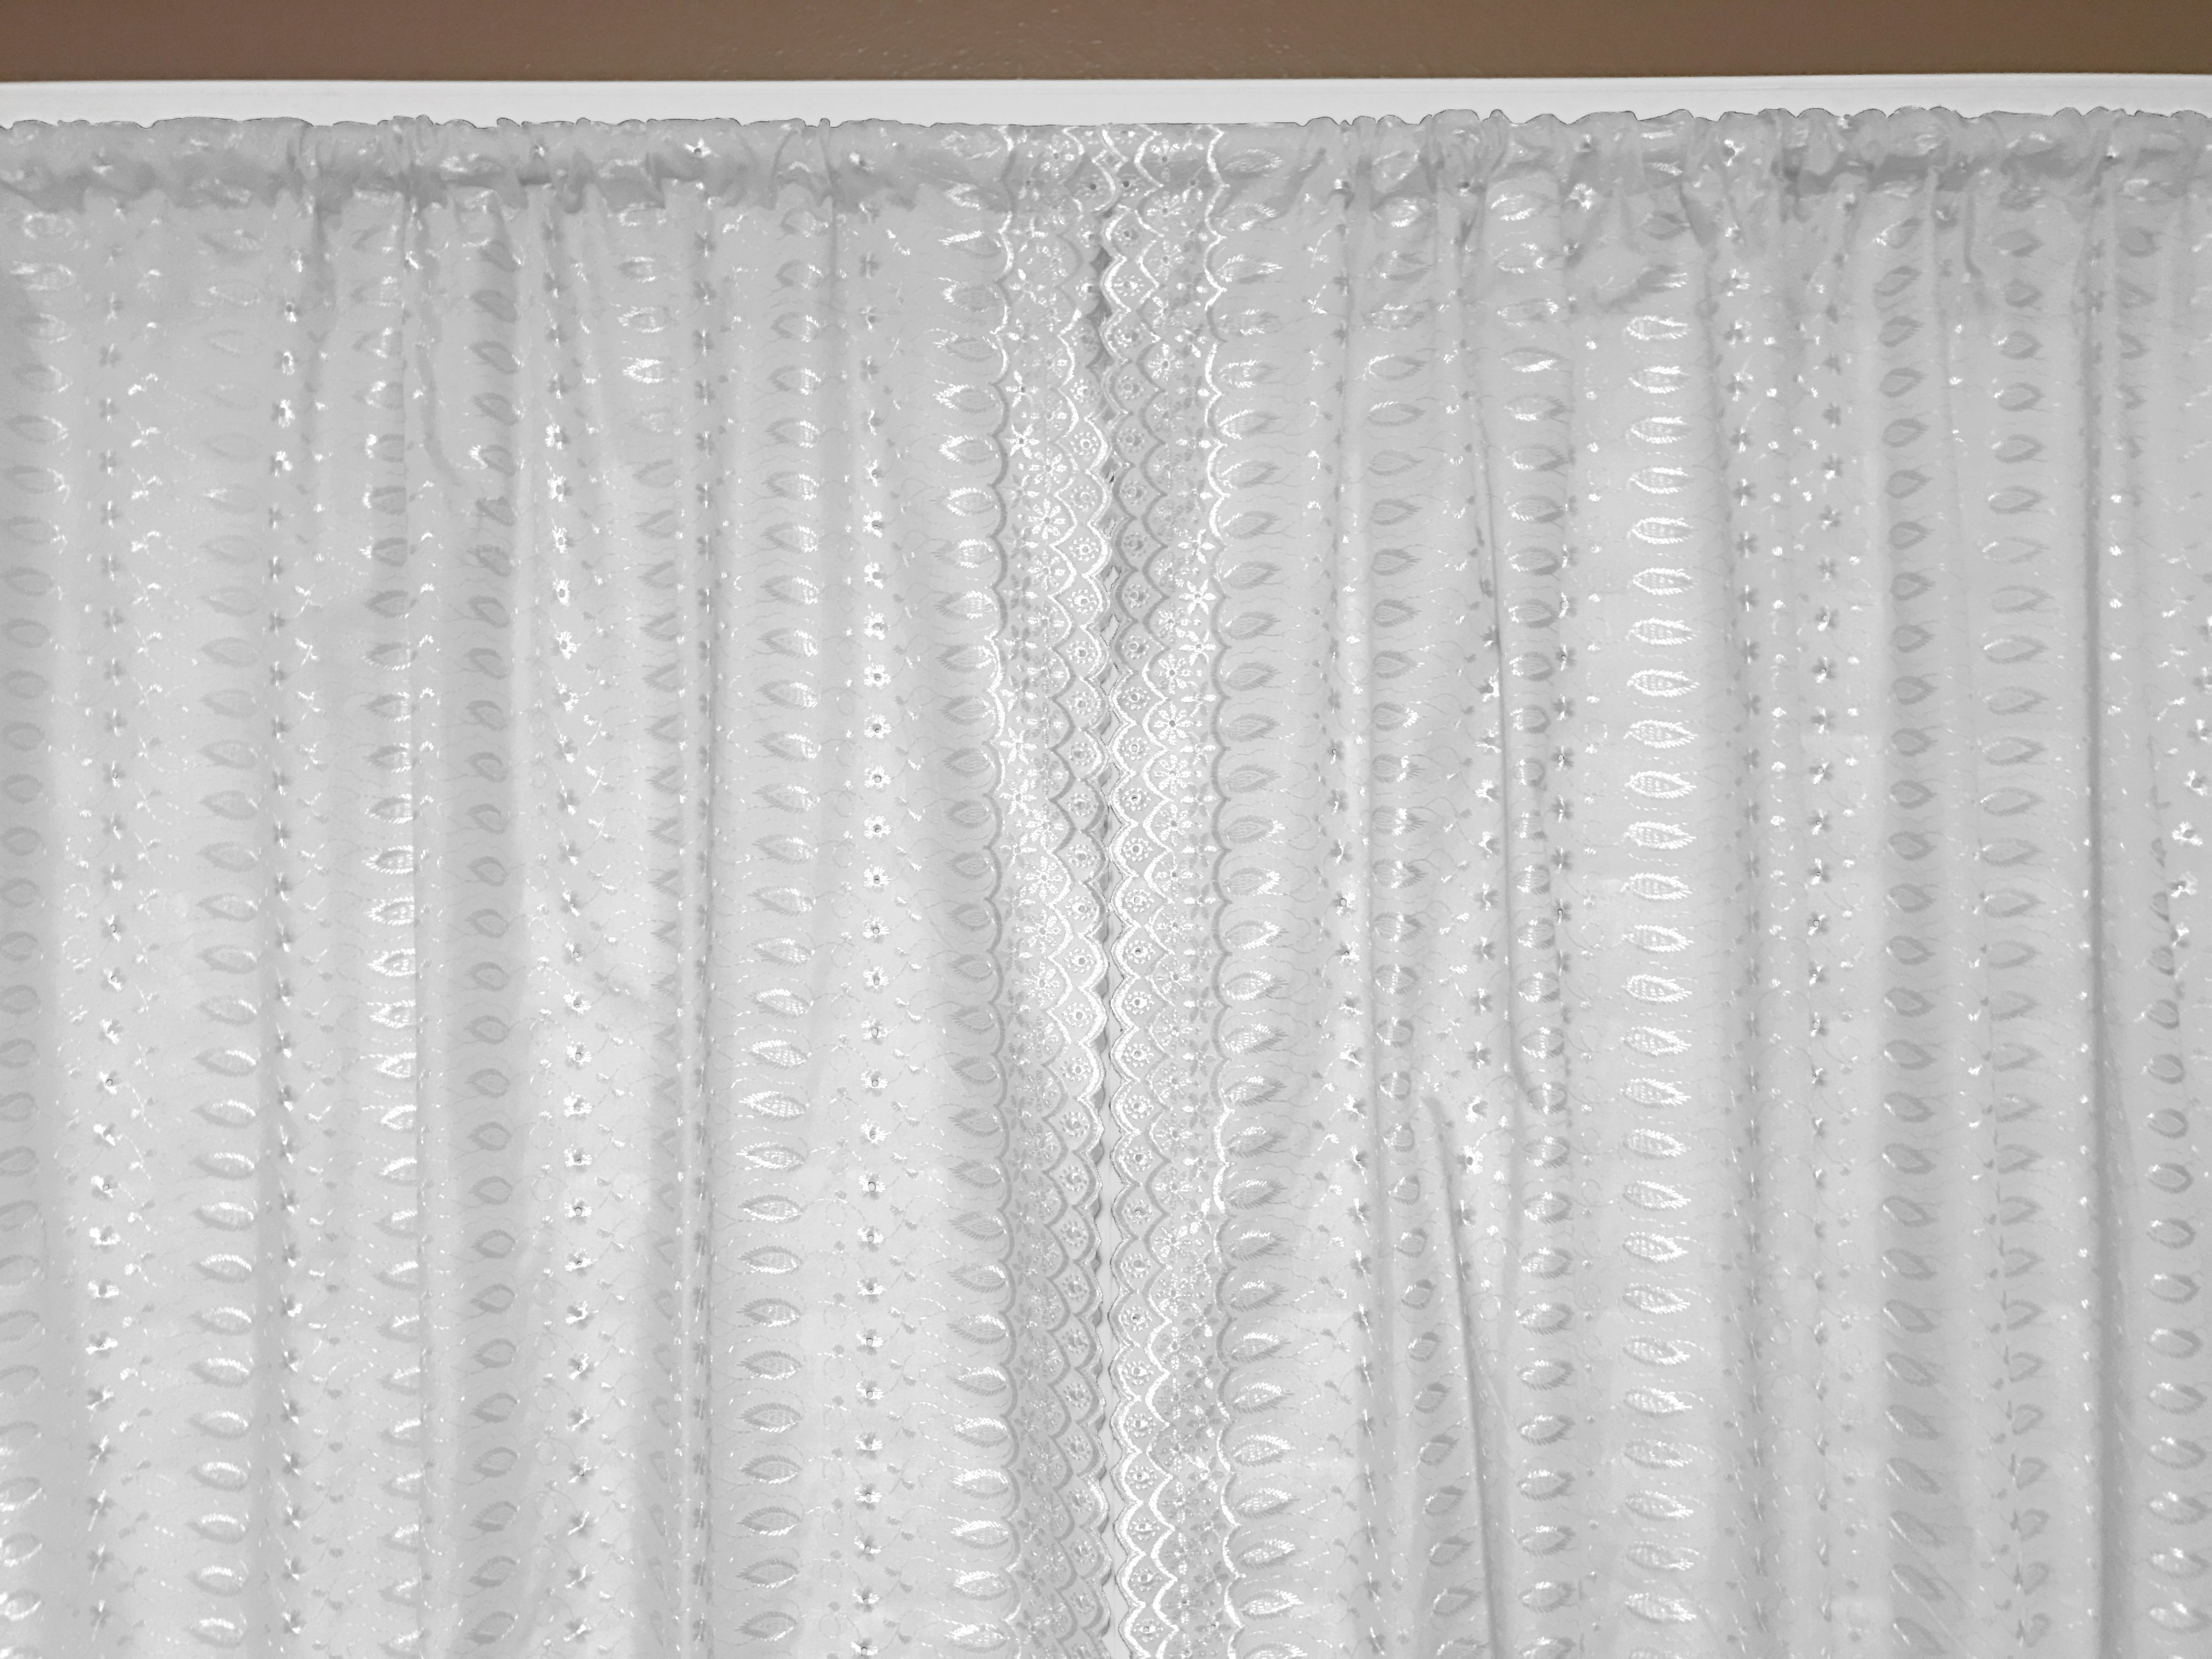 cotton eyelet window curtains scalloped sides 2 piece set 42 wide panels white